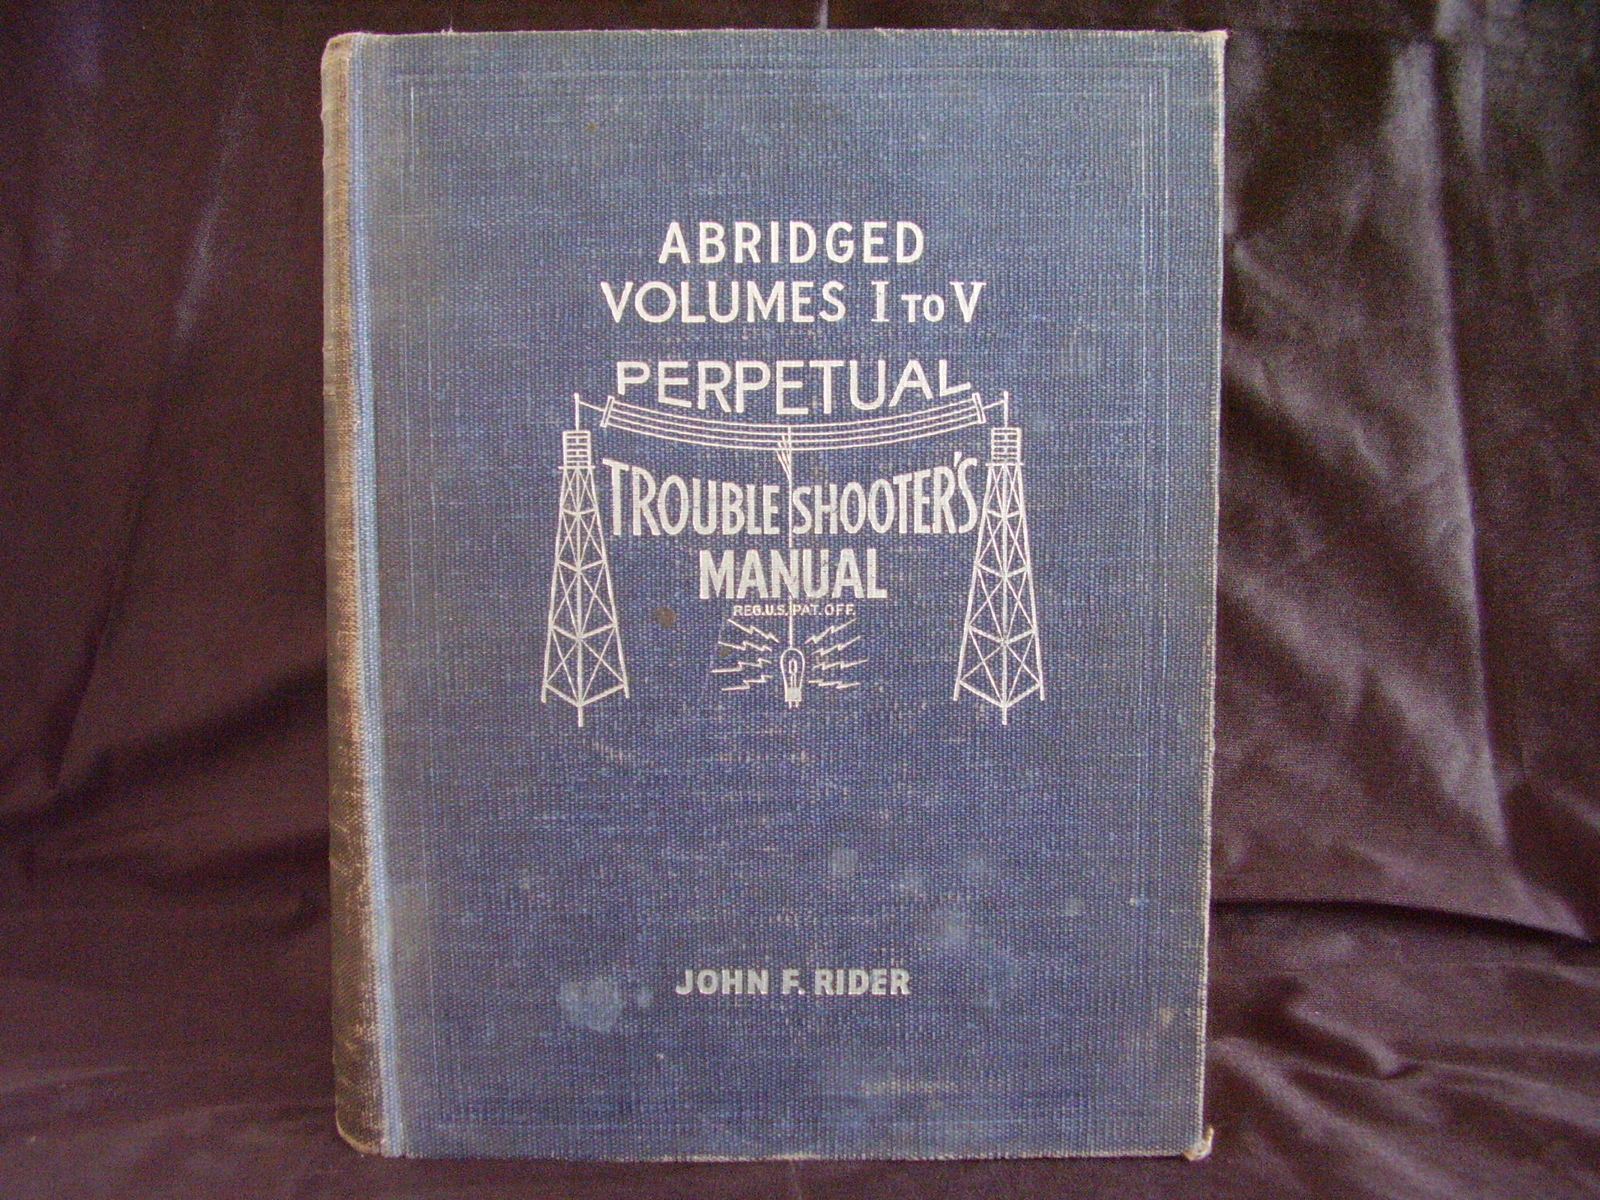 1941 Perpetual Troubleshooter's Manual  Vol. 1 to 5 John F. Rider